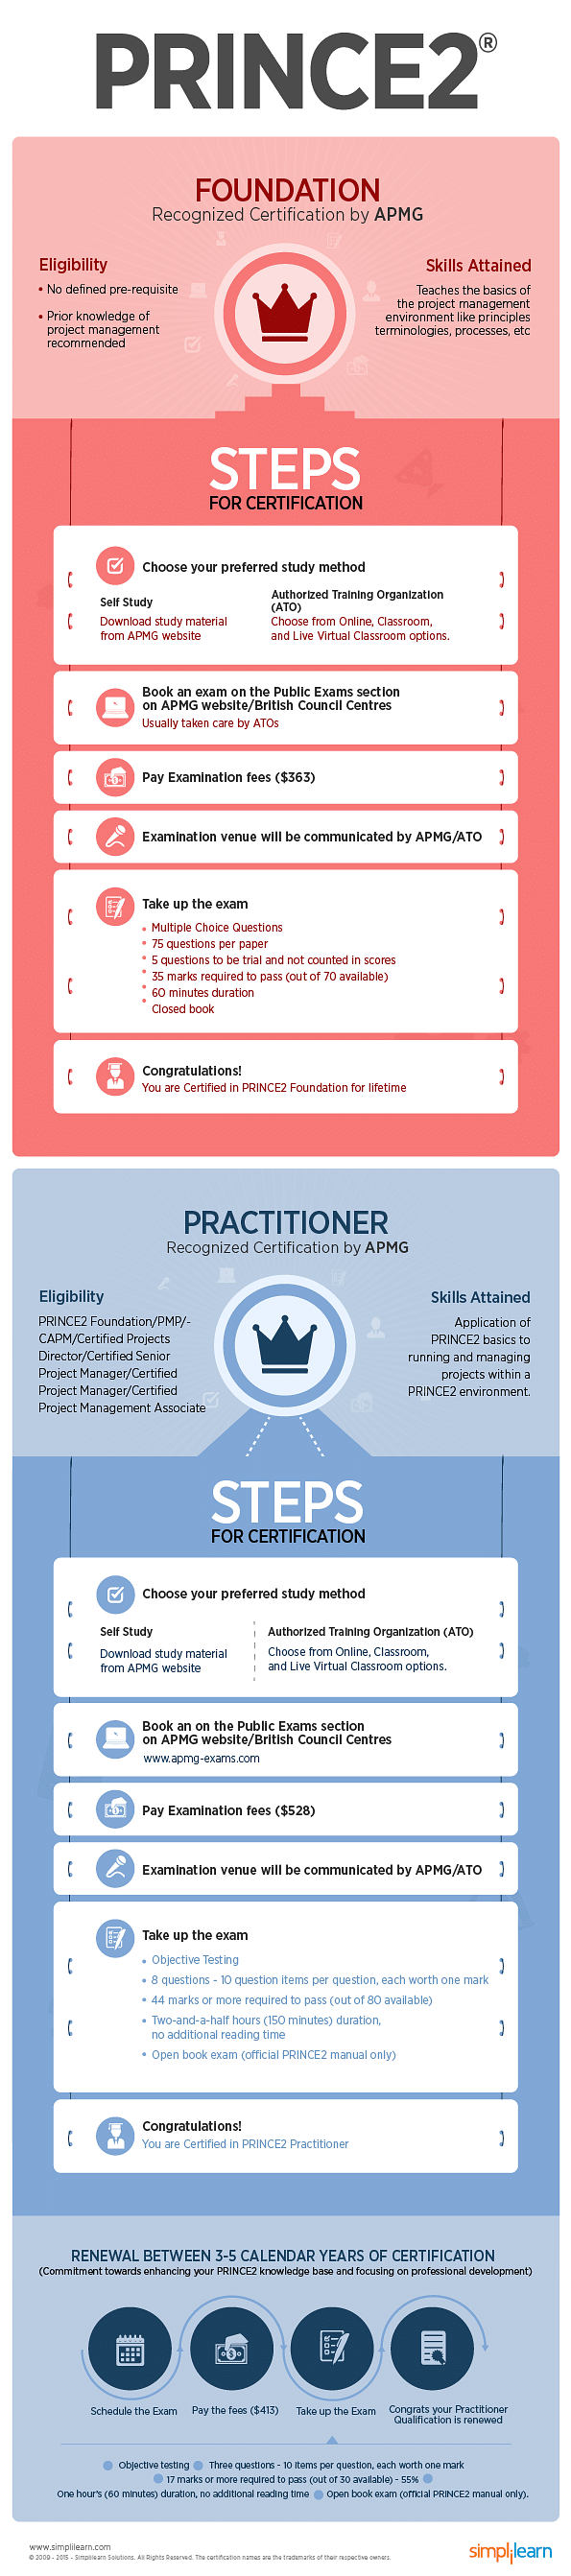 Prince2 foundation practitioner certification eligibility and prince2 certification journey xflitez Images